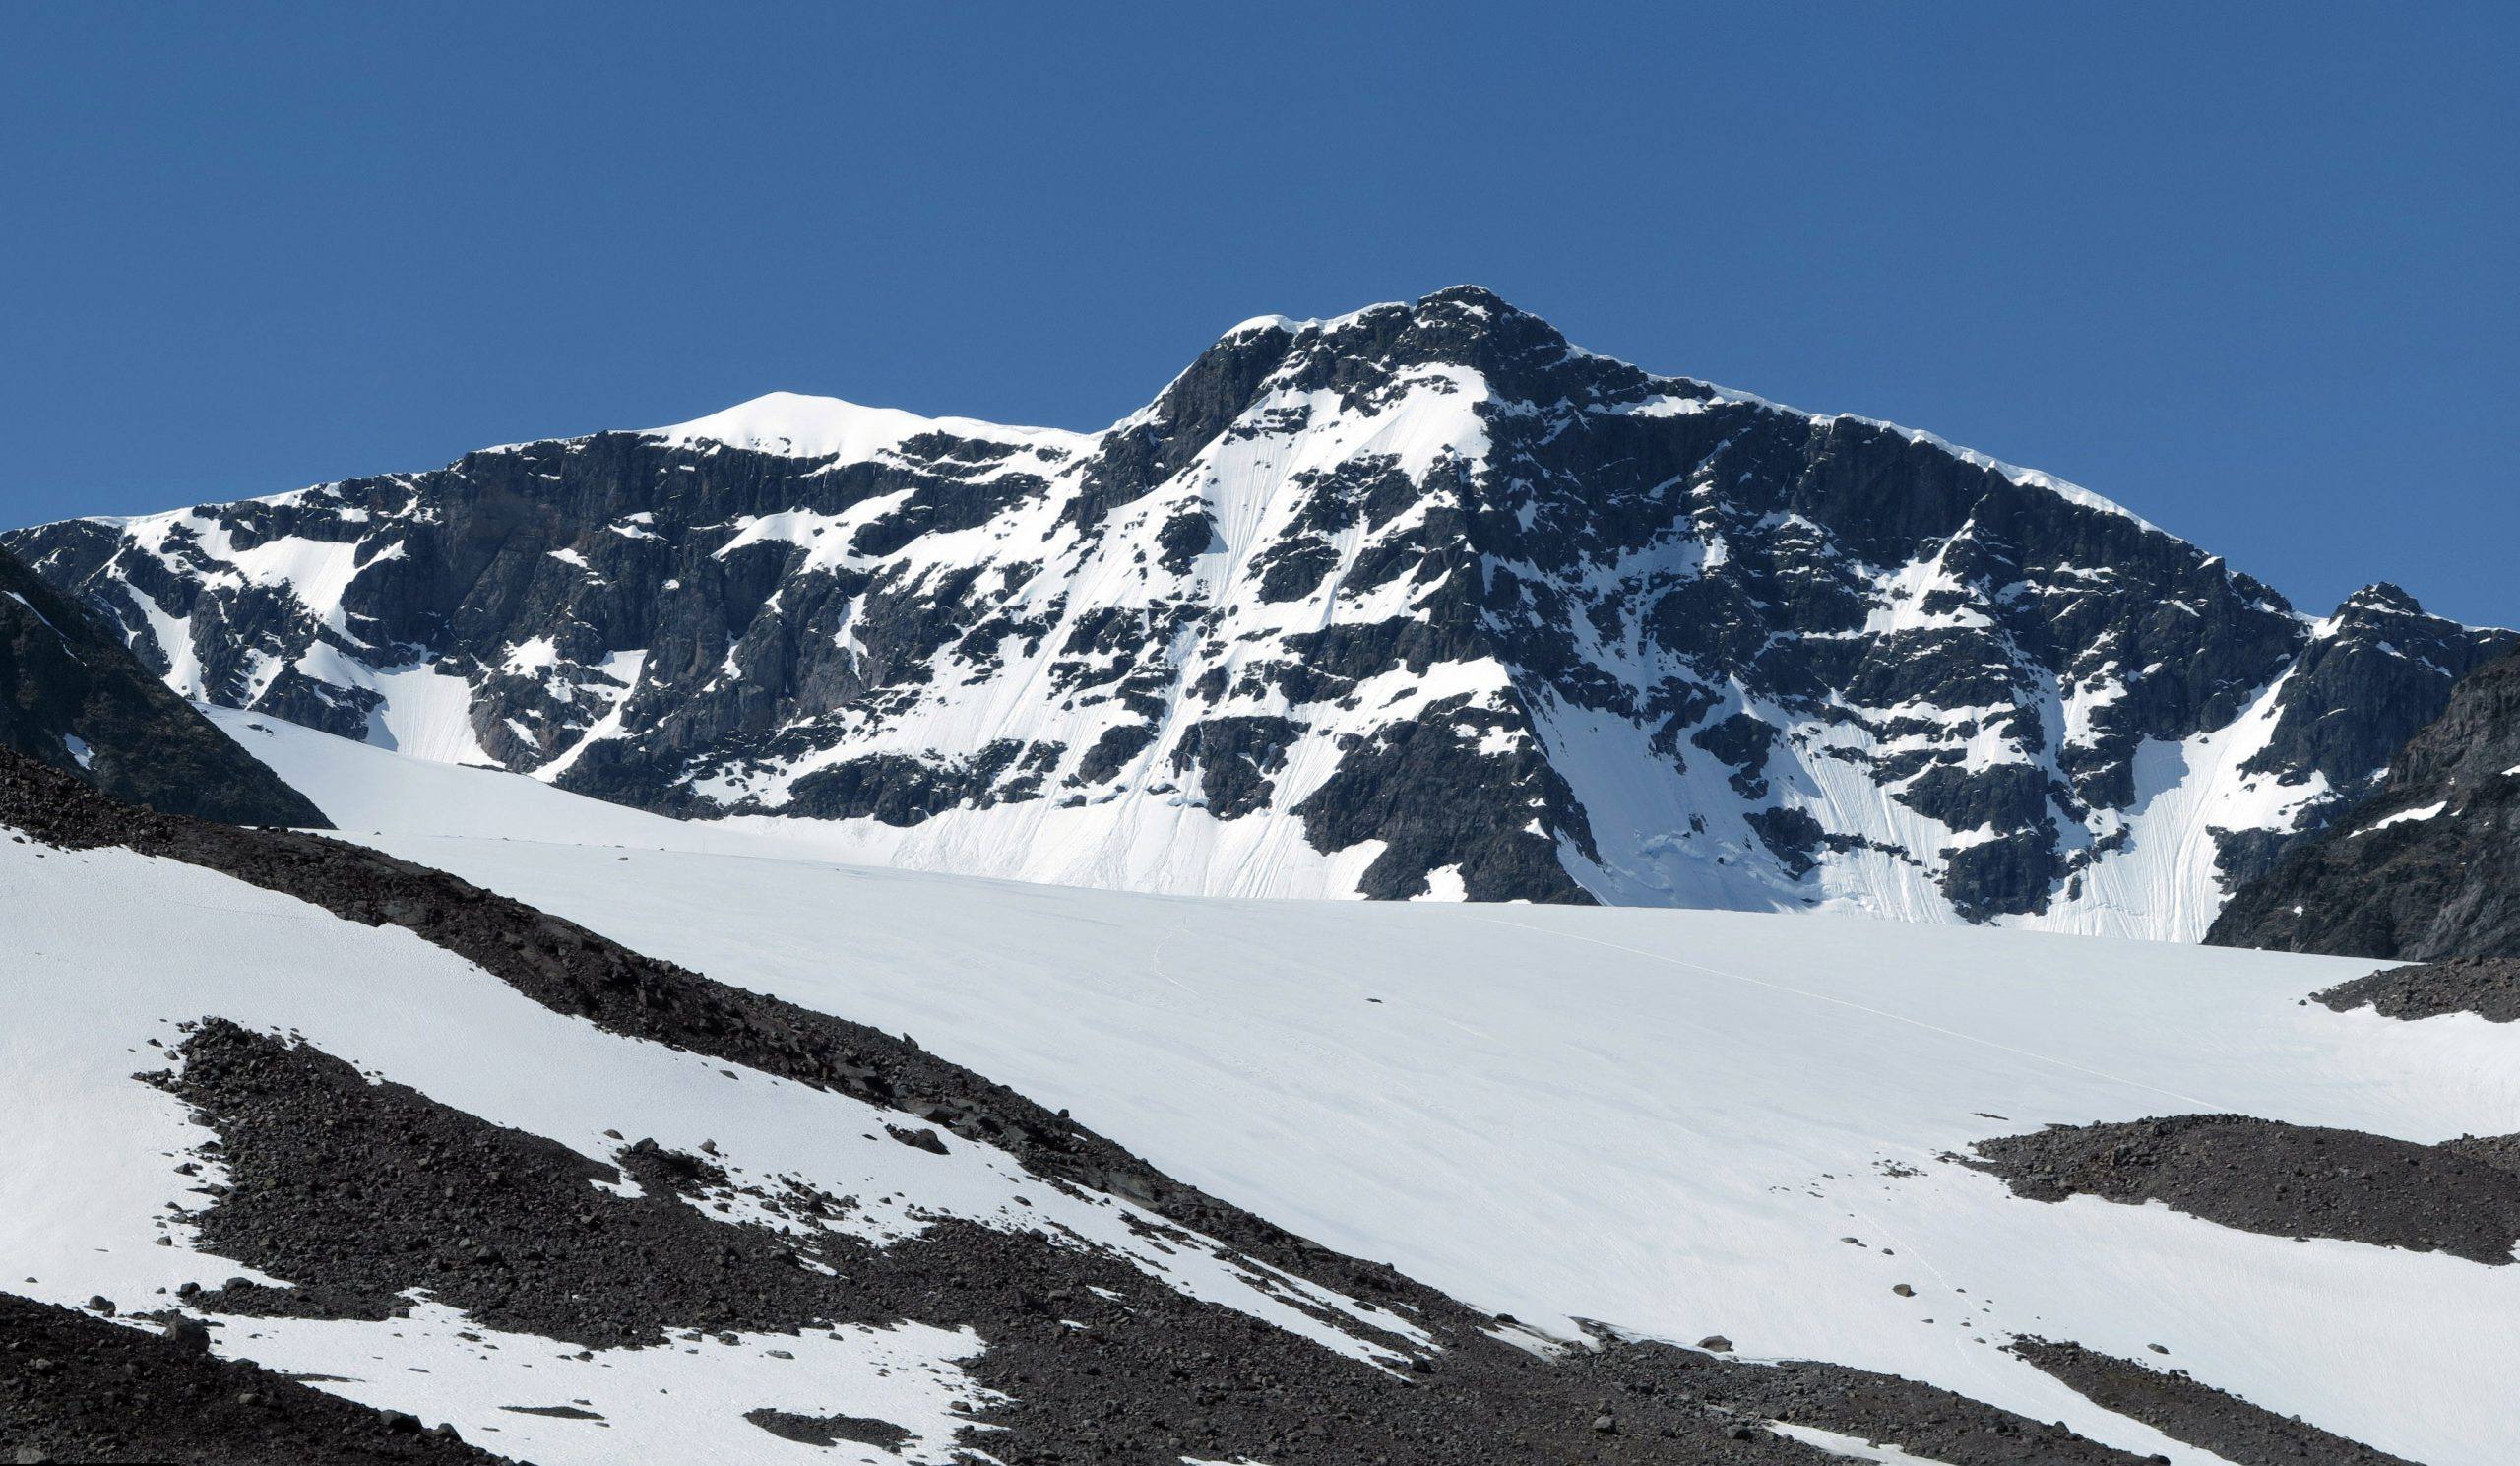 Kebnekaise: The tallest mountain in Sweden